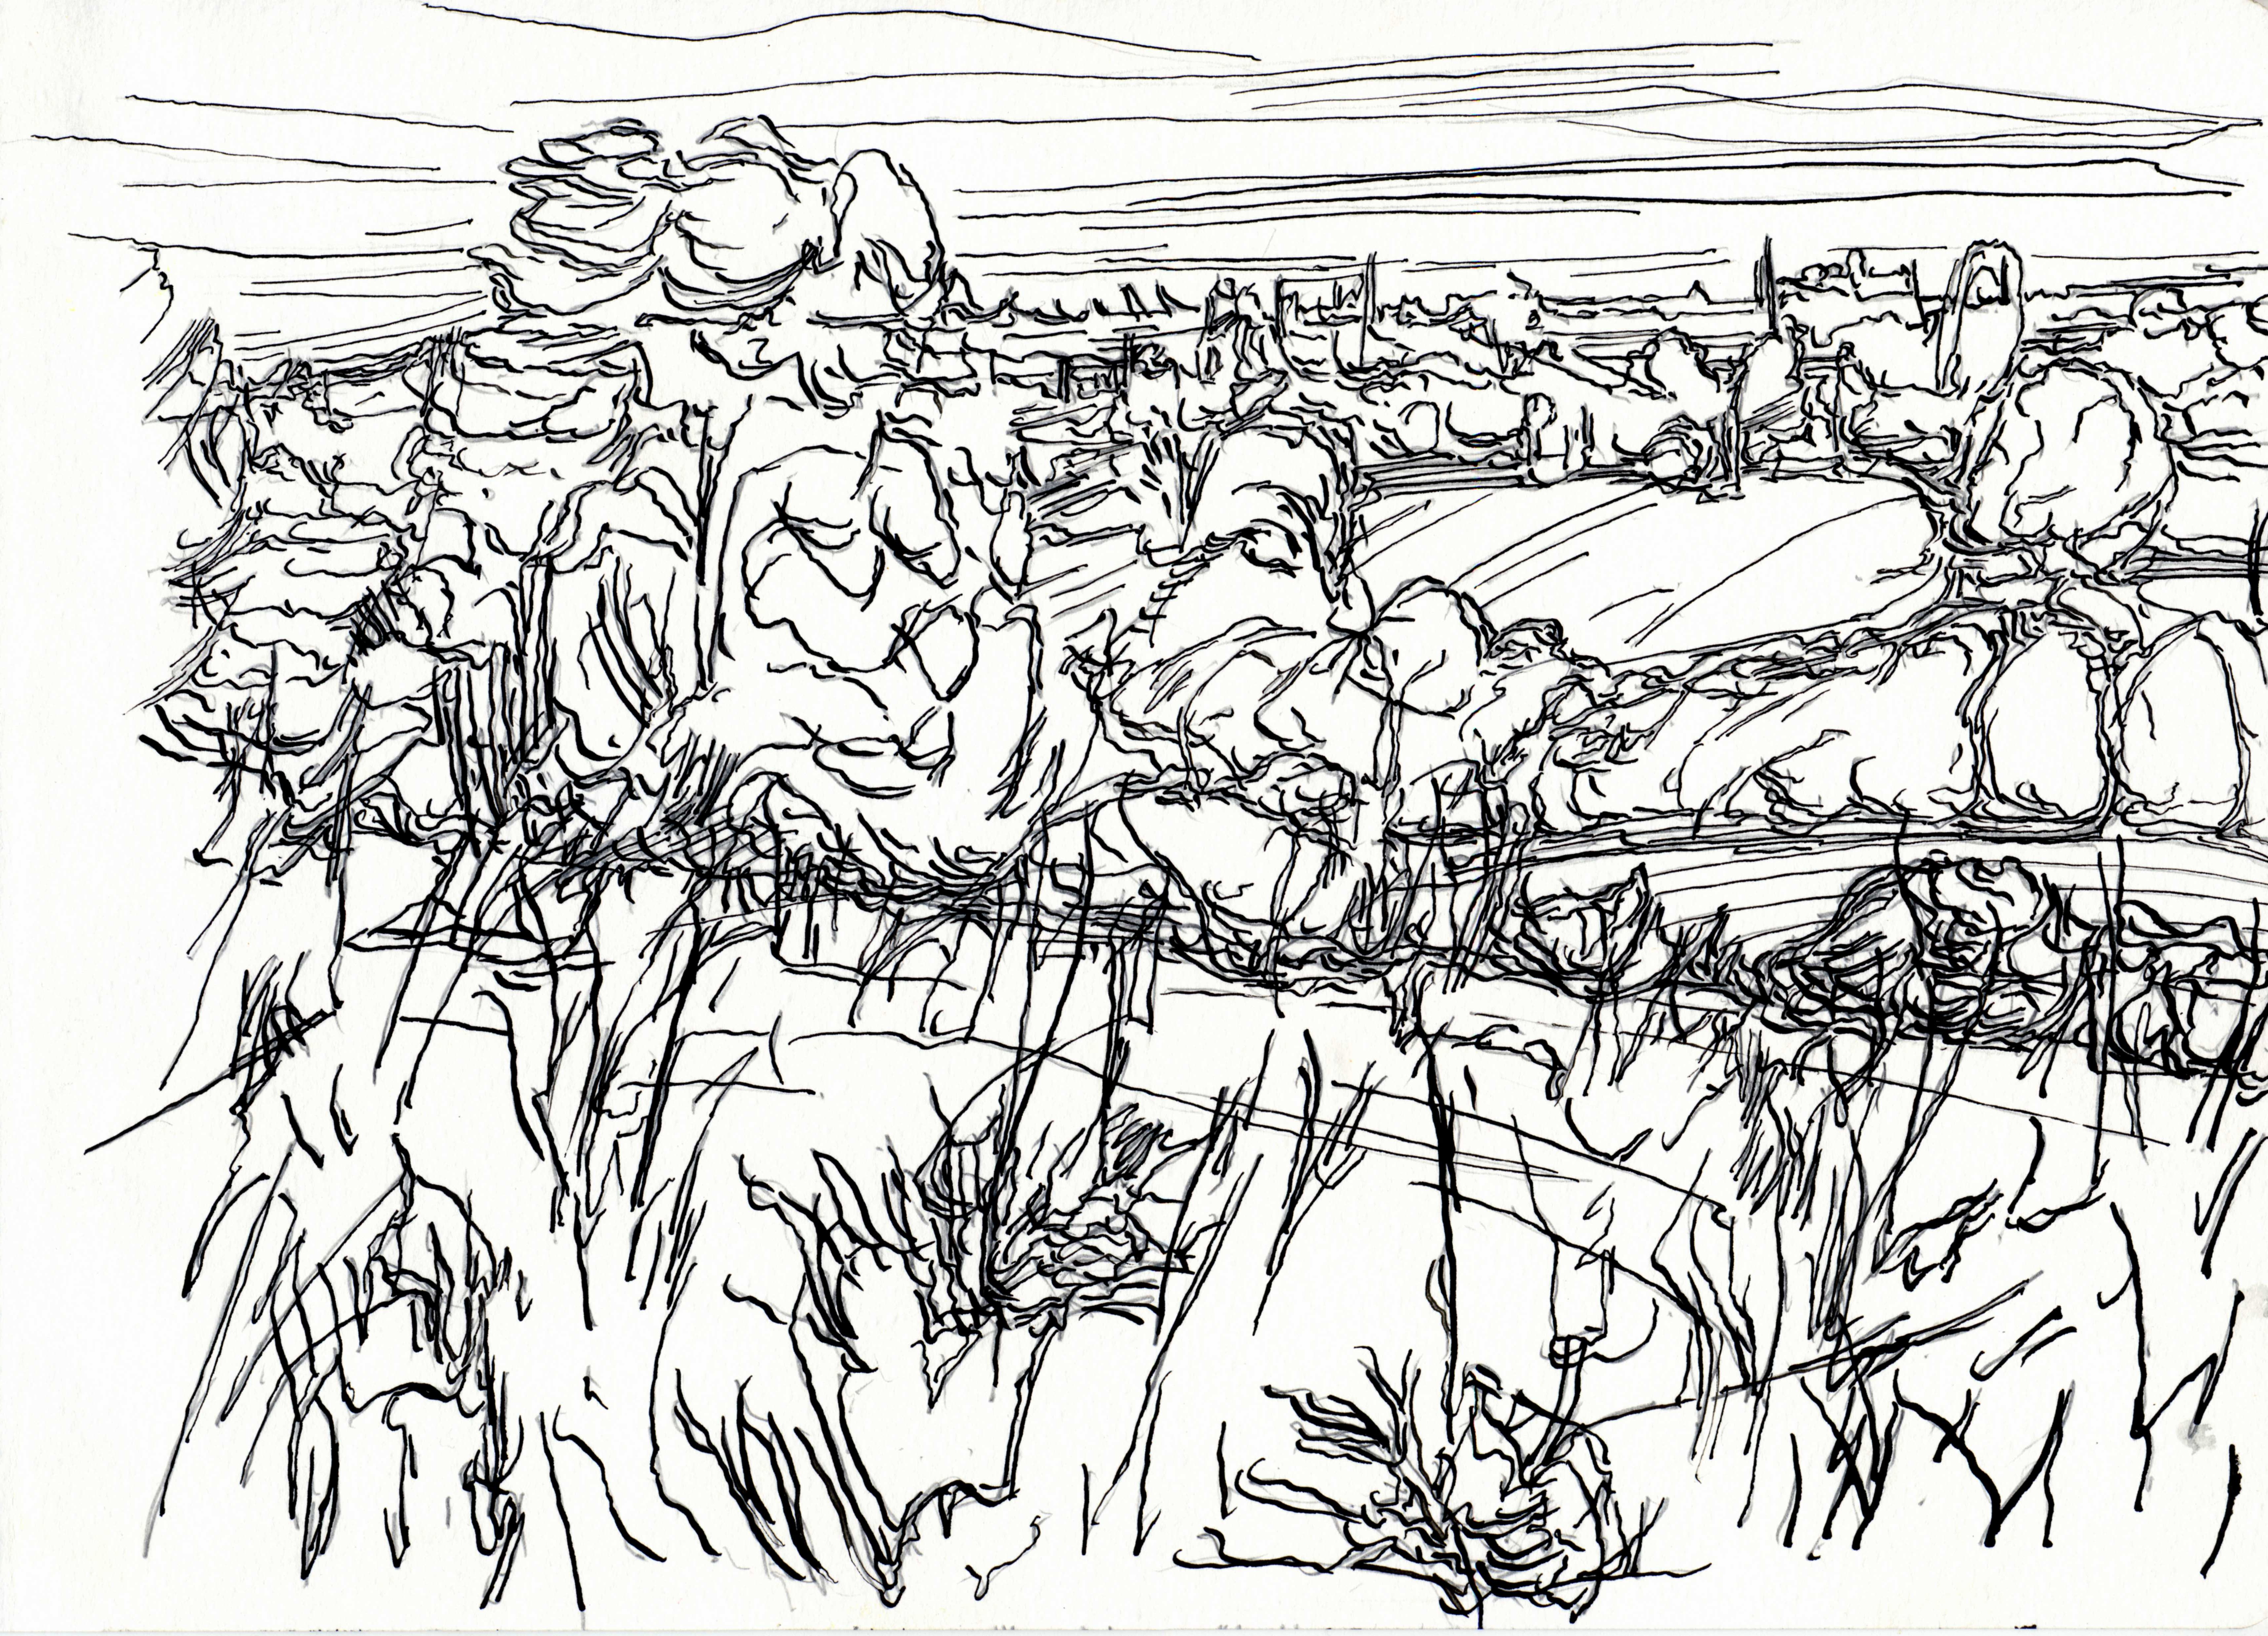 6855x4946 Drawings Landscapes The Weald Of Kent 2012 Whitemarkarts